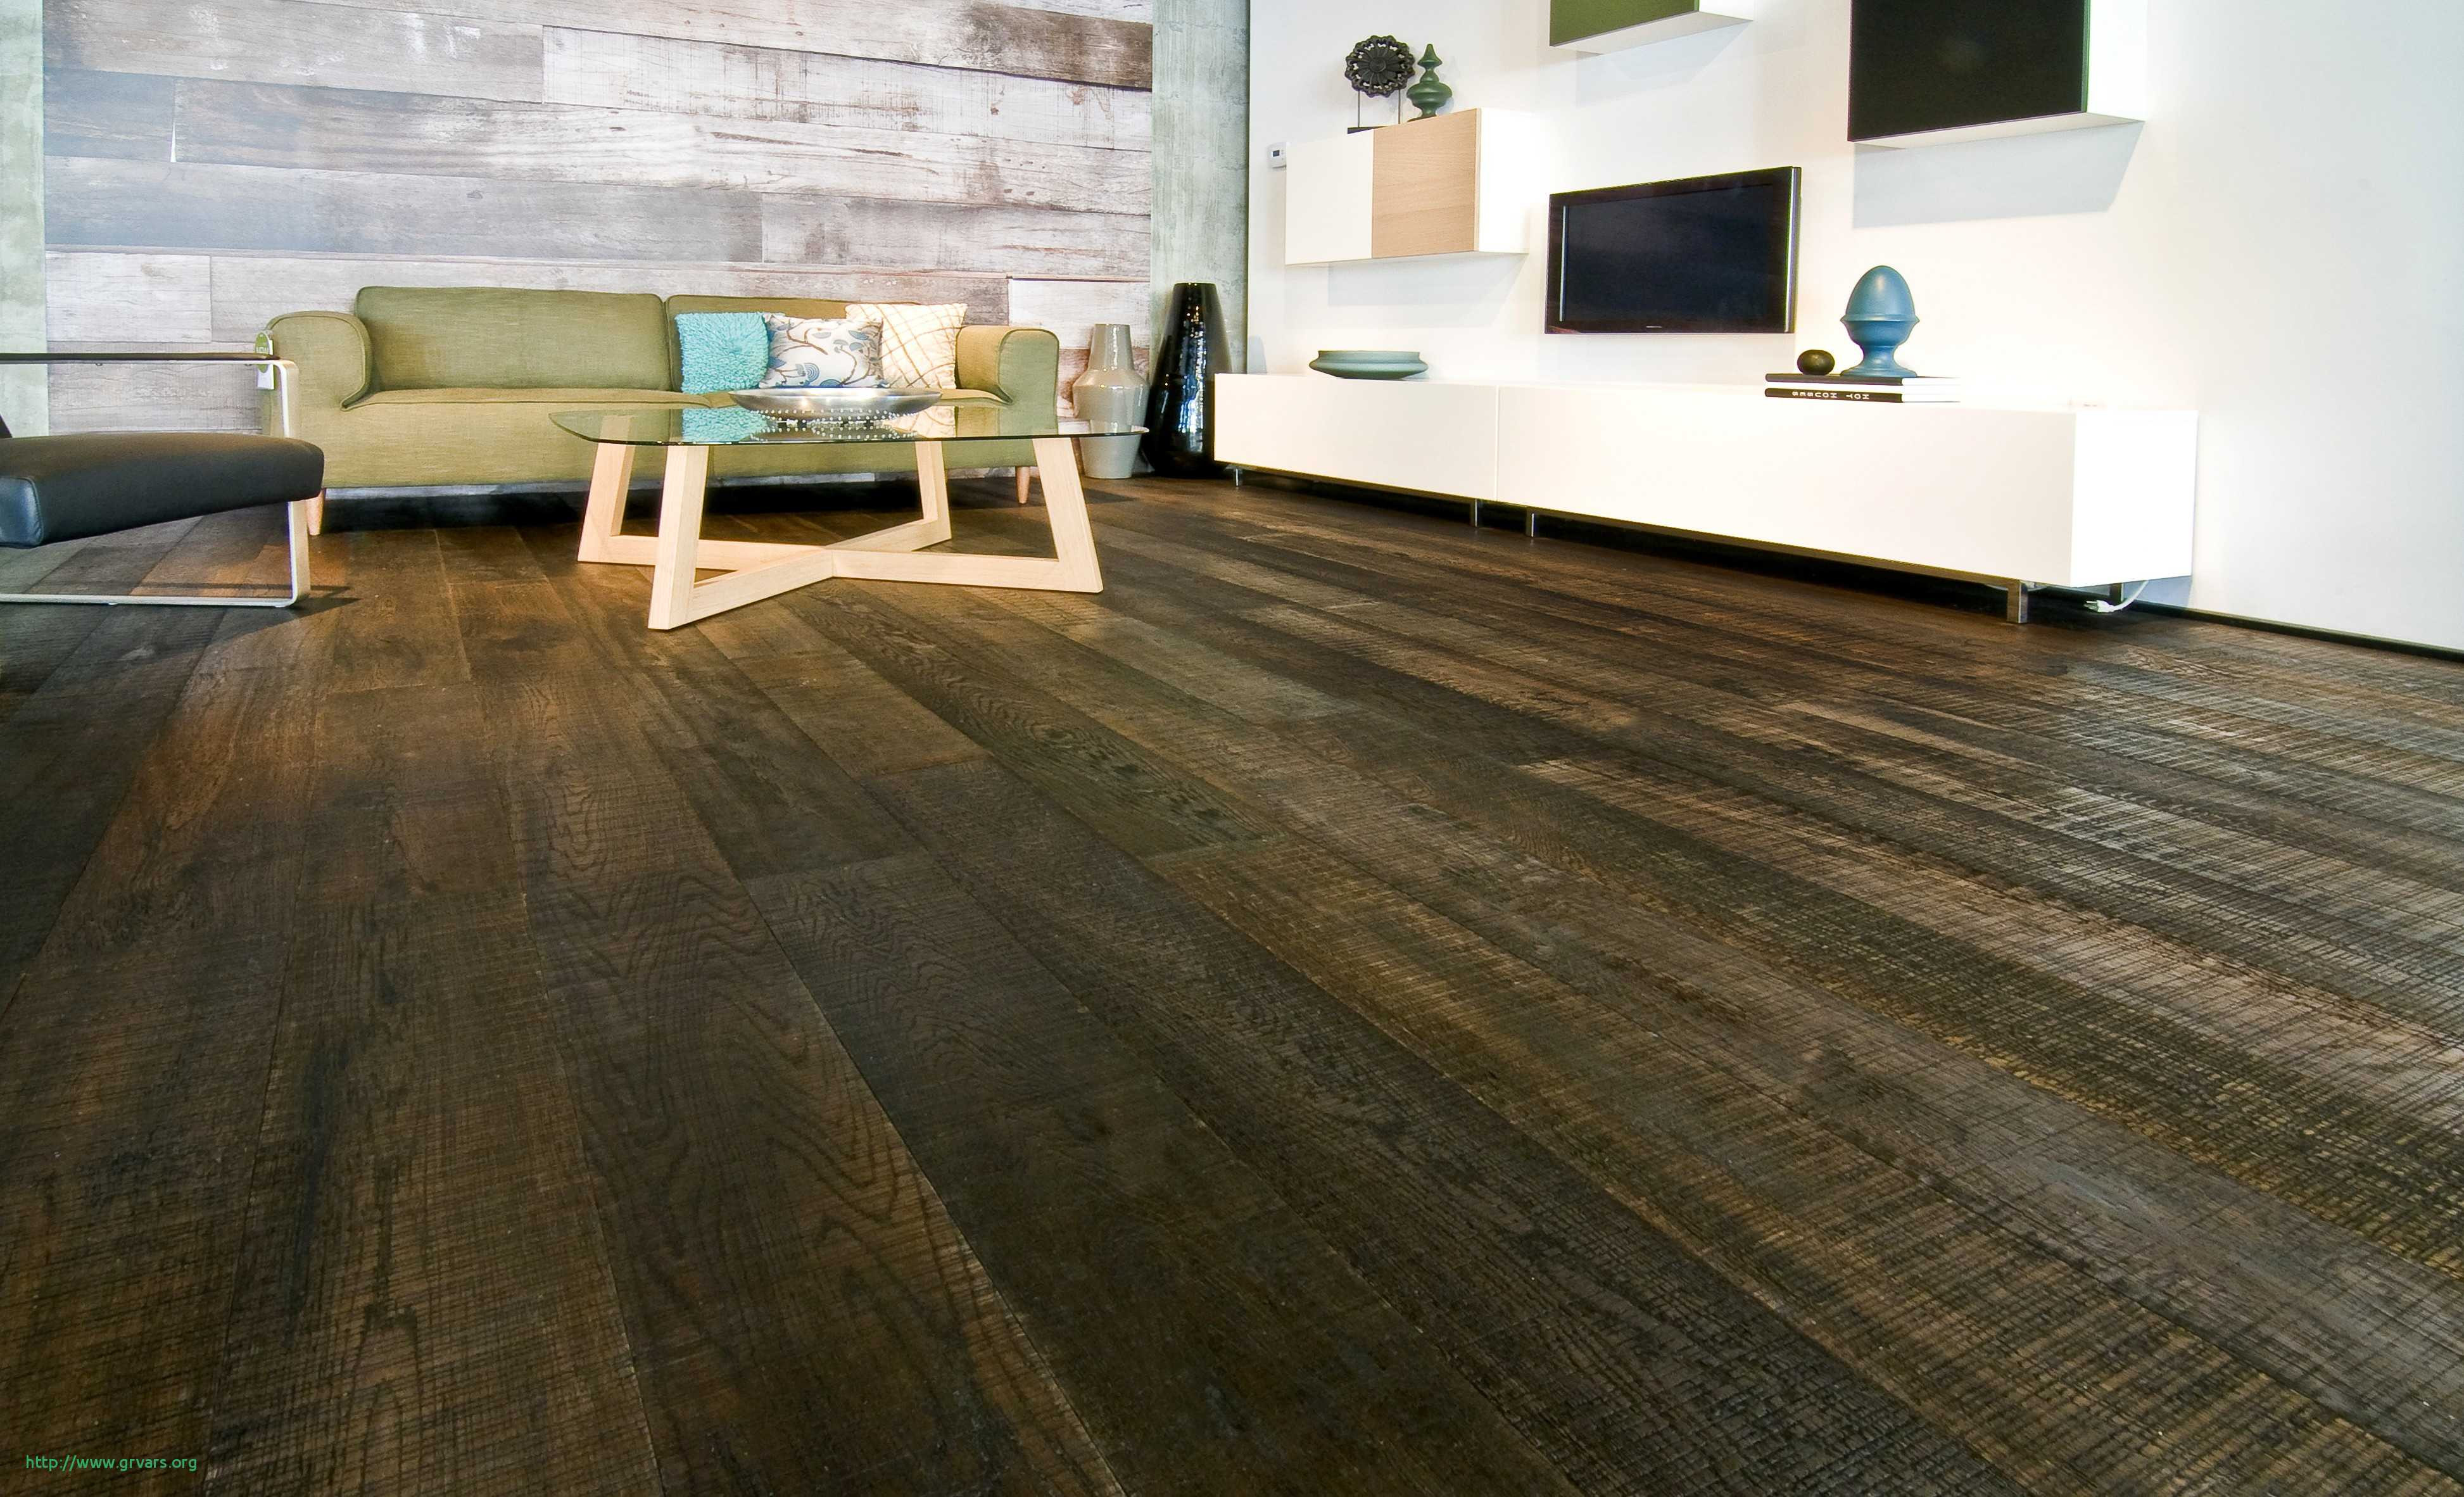 hardwood floors or carpet of 24 impressionnant most affordable hardwood floors ideas blog intended for full size of bedroom engaging discount hardwood flooring 5 where to buy inspirational 0d grace place